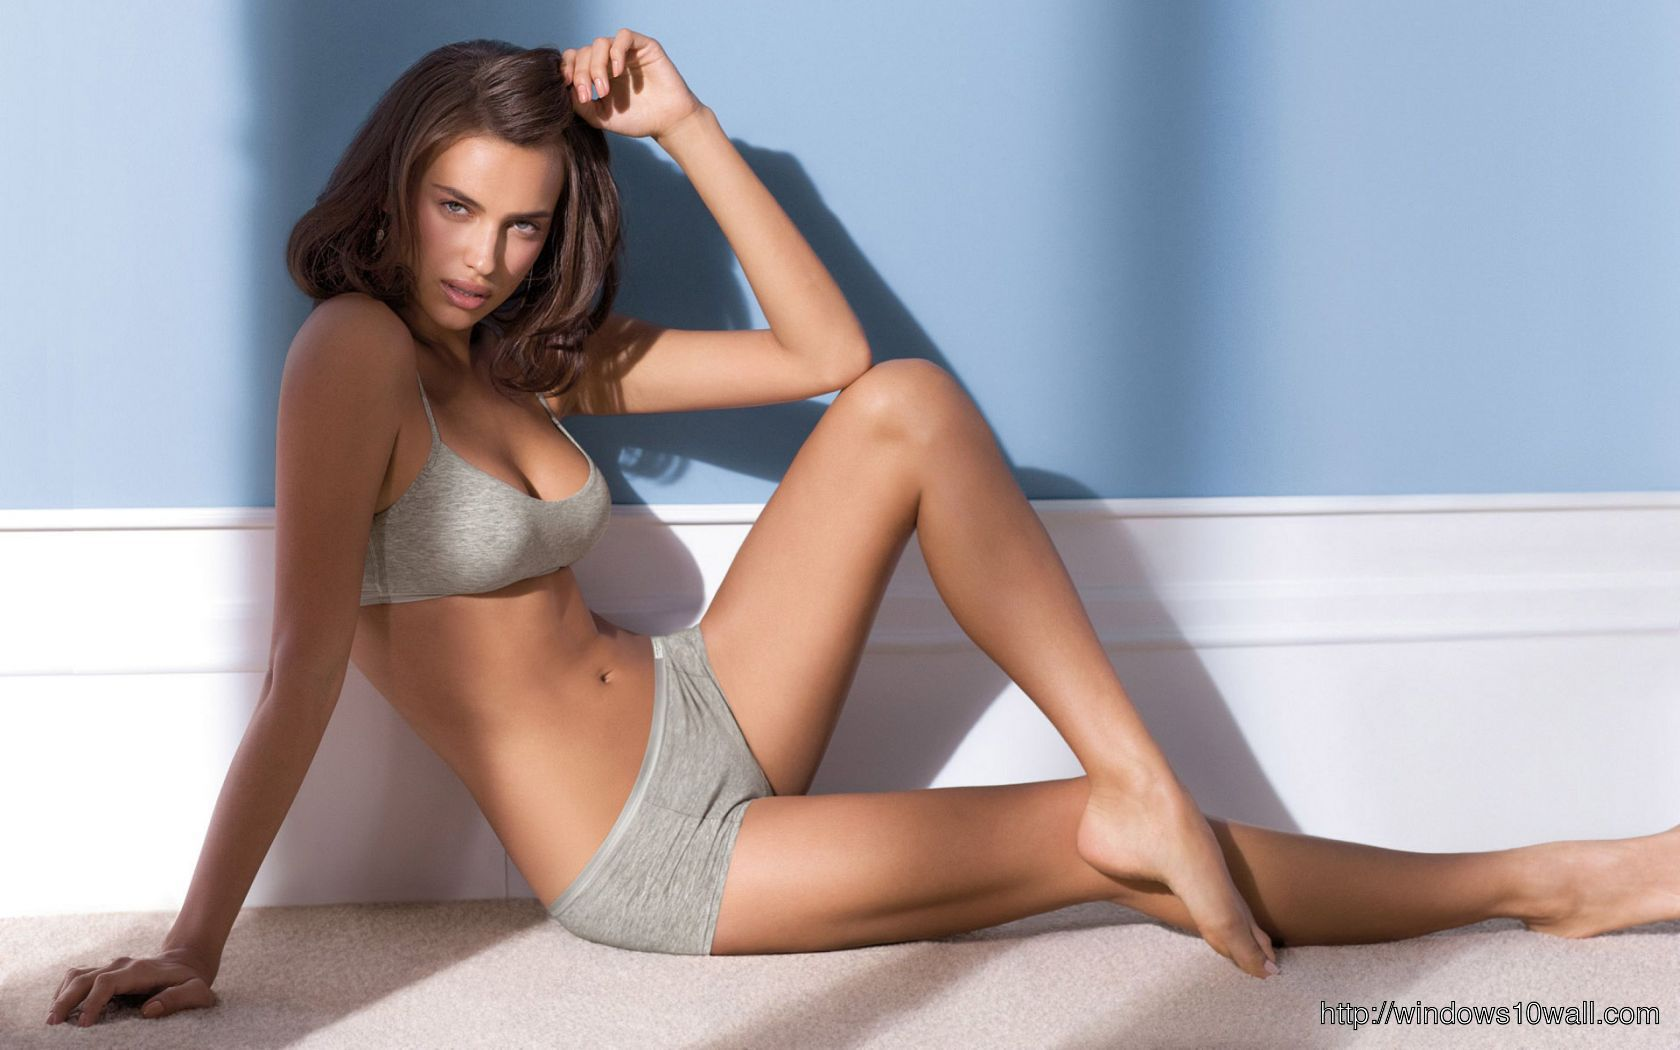 Irina Shayk on floor background Wallpaper